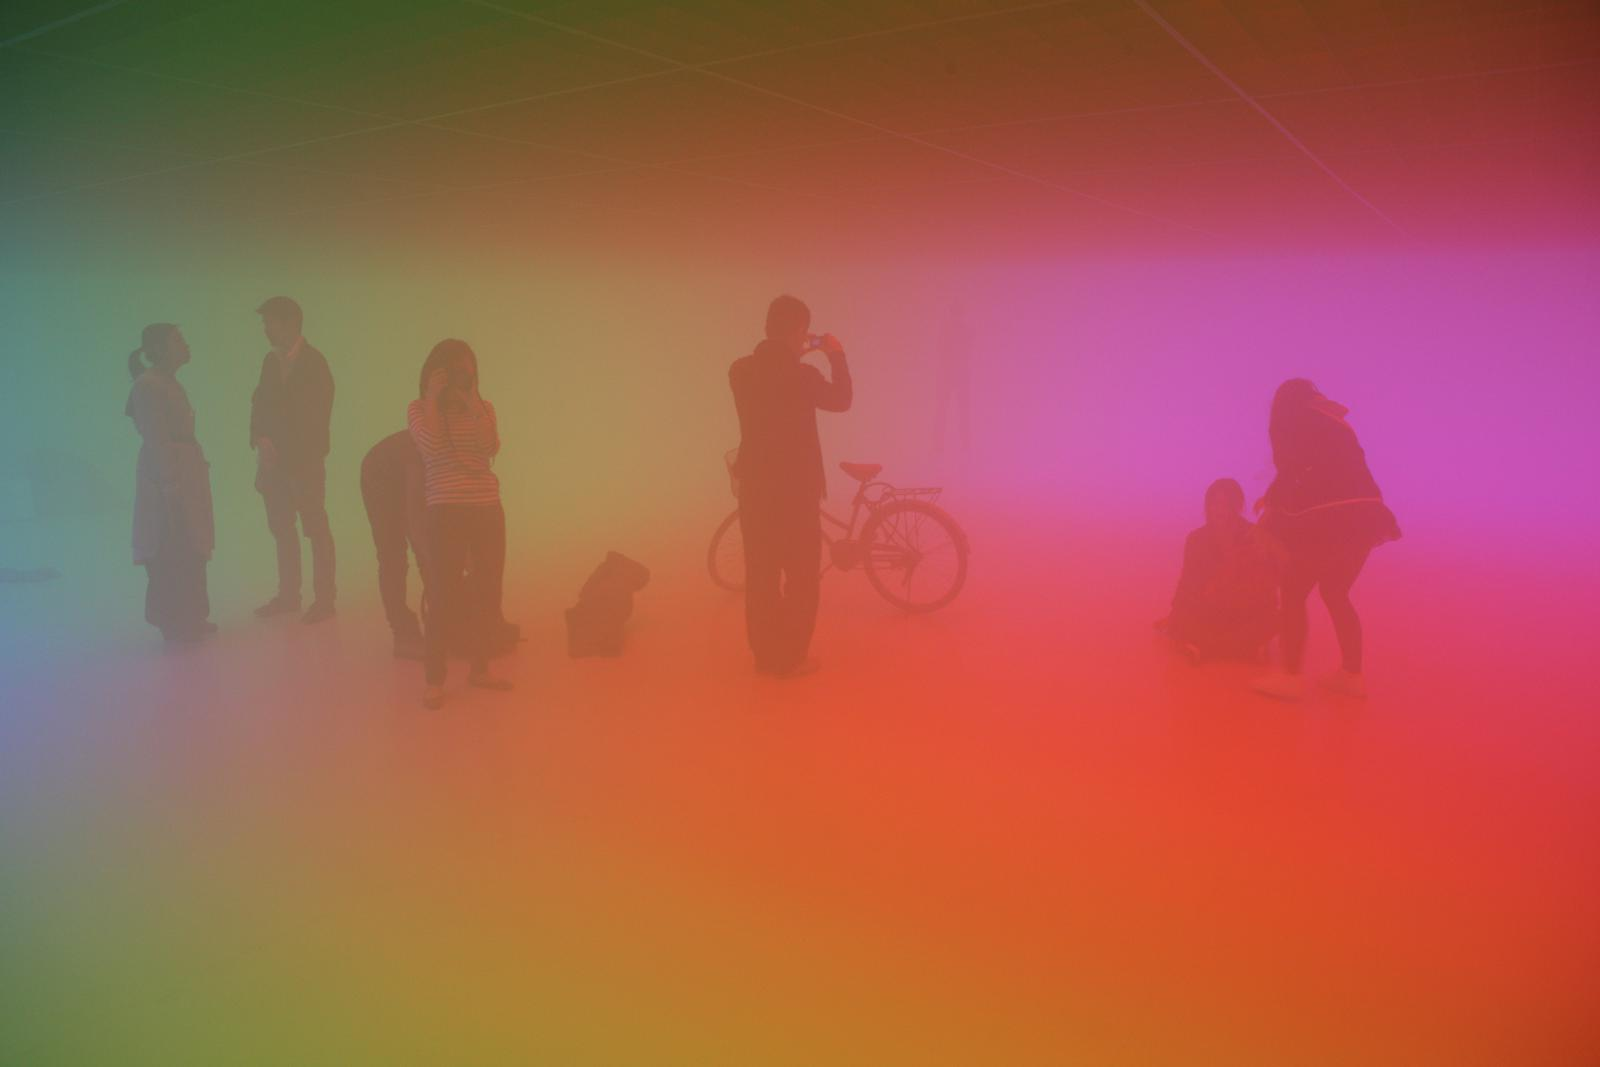 Feelings are facts • Artwork • Studio Olafur Eliasson